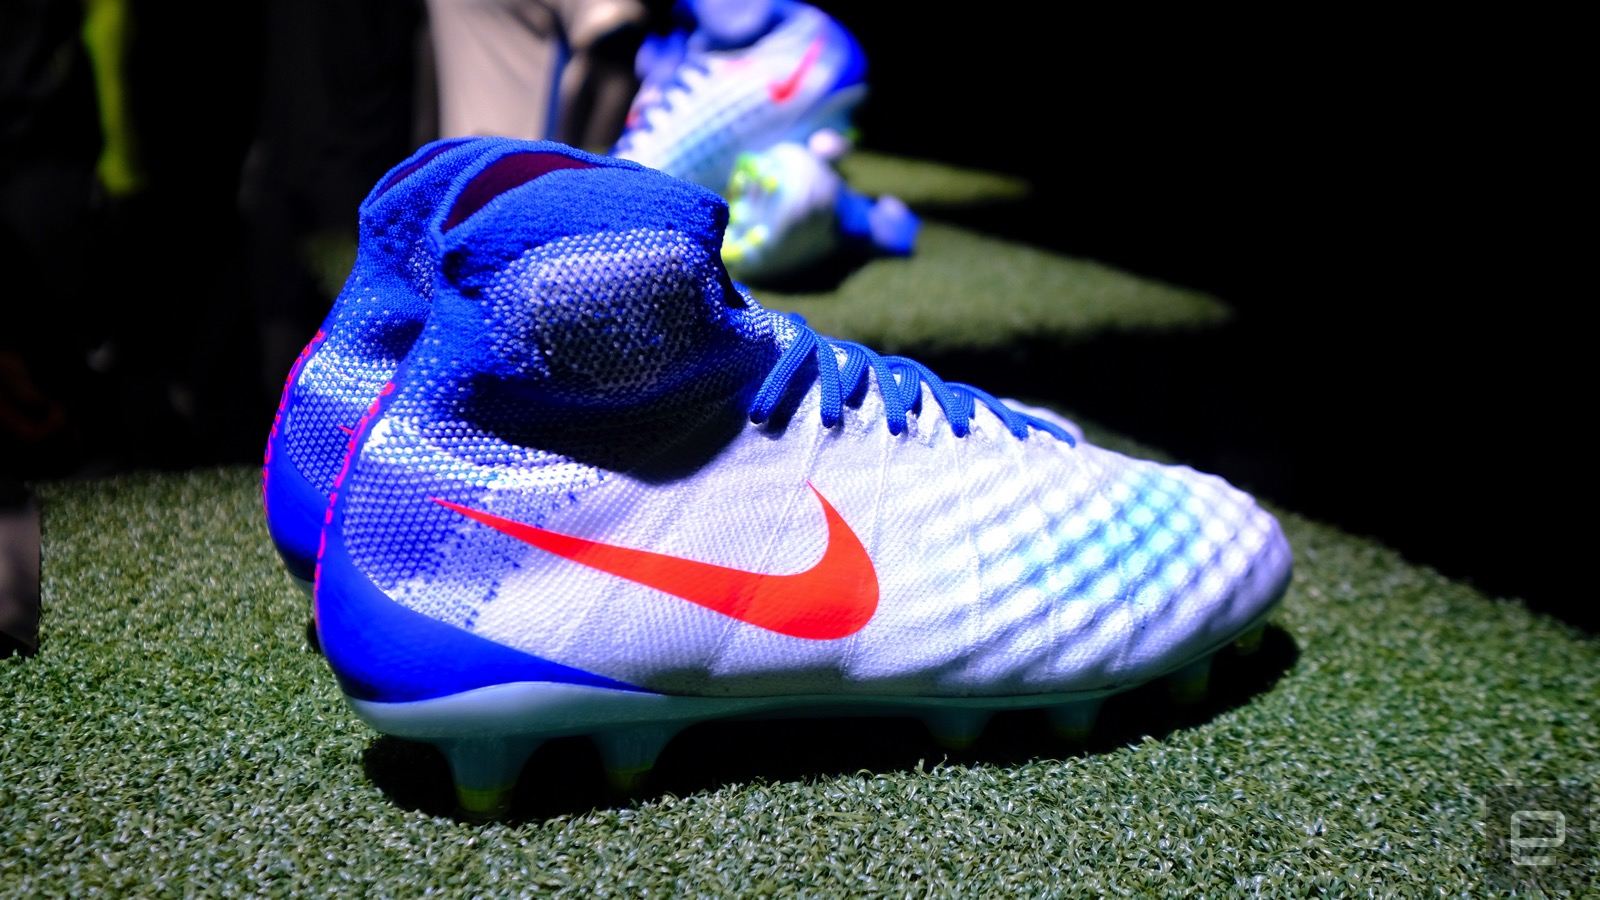 6f39ddad16a7 A themed Magista 2 will be worn by the USA women s national team at the  2016 Rio Olympics.